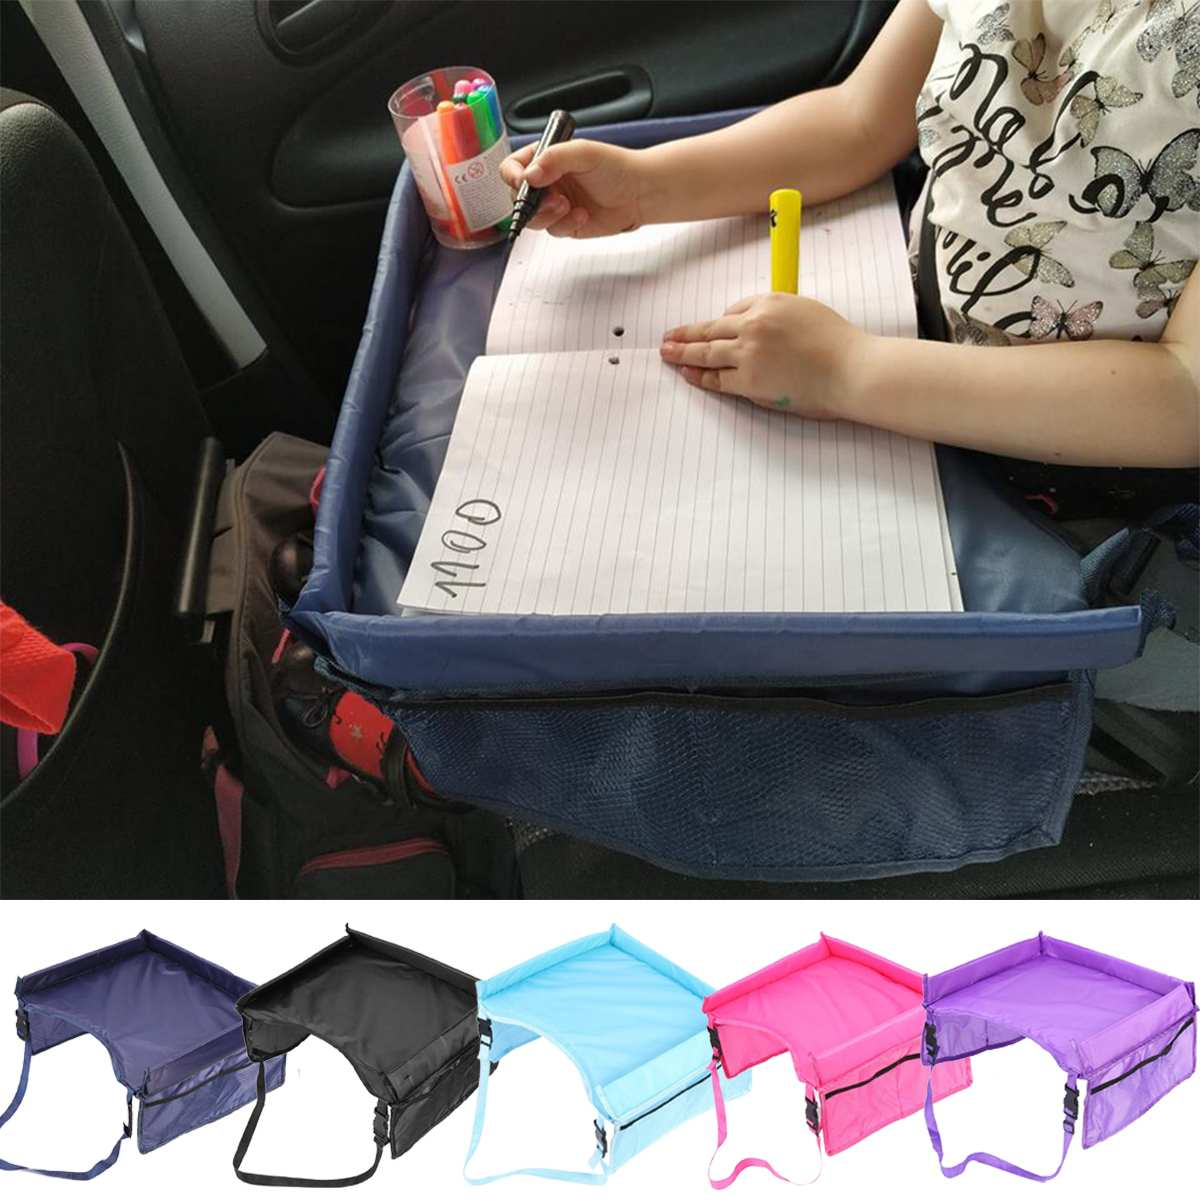 Child Car Seat Tray Storage Rack Car Rear Trunk Storage Net Waterproof Baby Car Home Table Baby Stroller Food Desk Holder